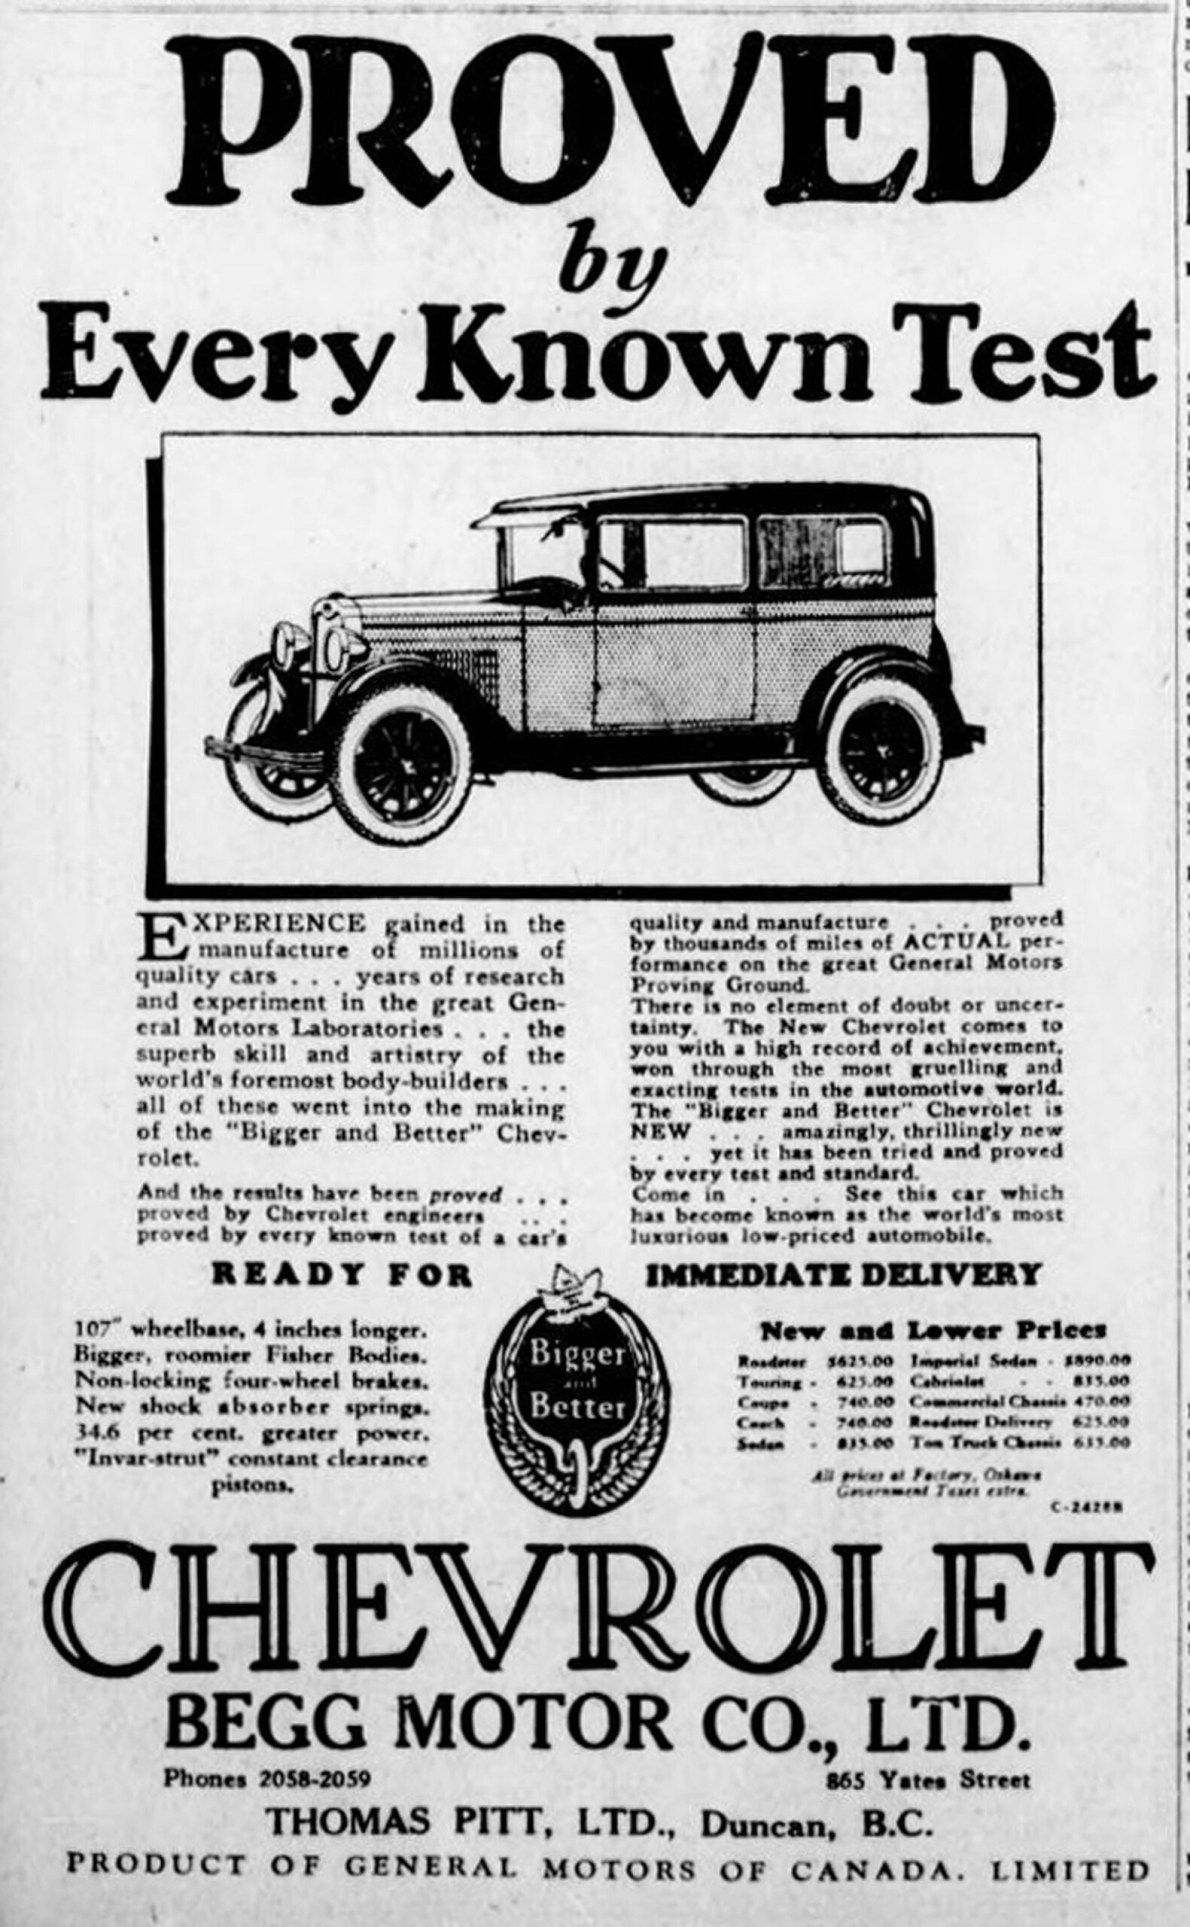 1928 advertisement for Chevrolet by Begg Motor Company, 865 Yates Street. (Victoria Online Sightseeing collection)